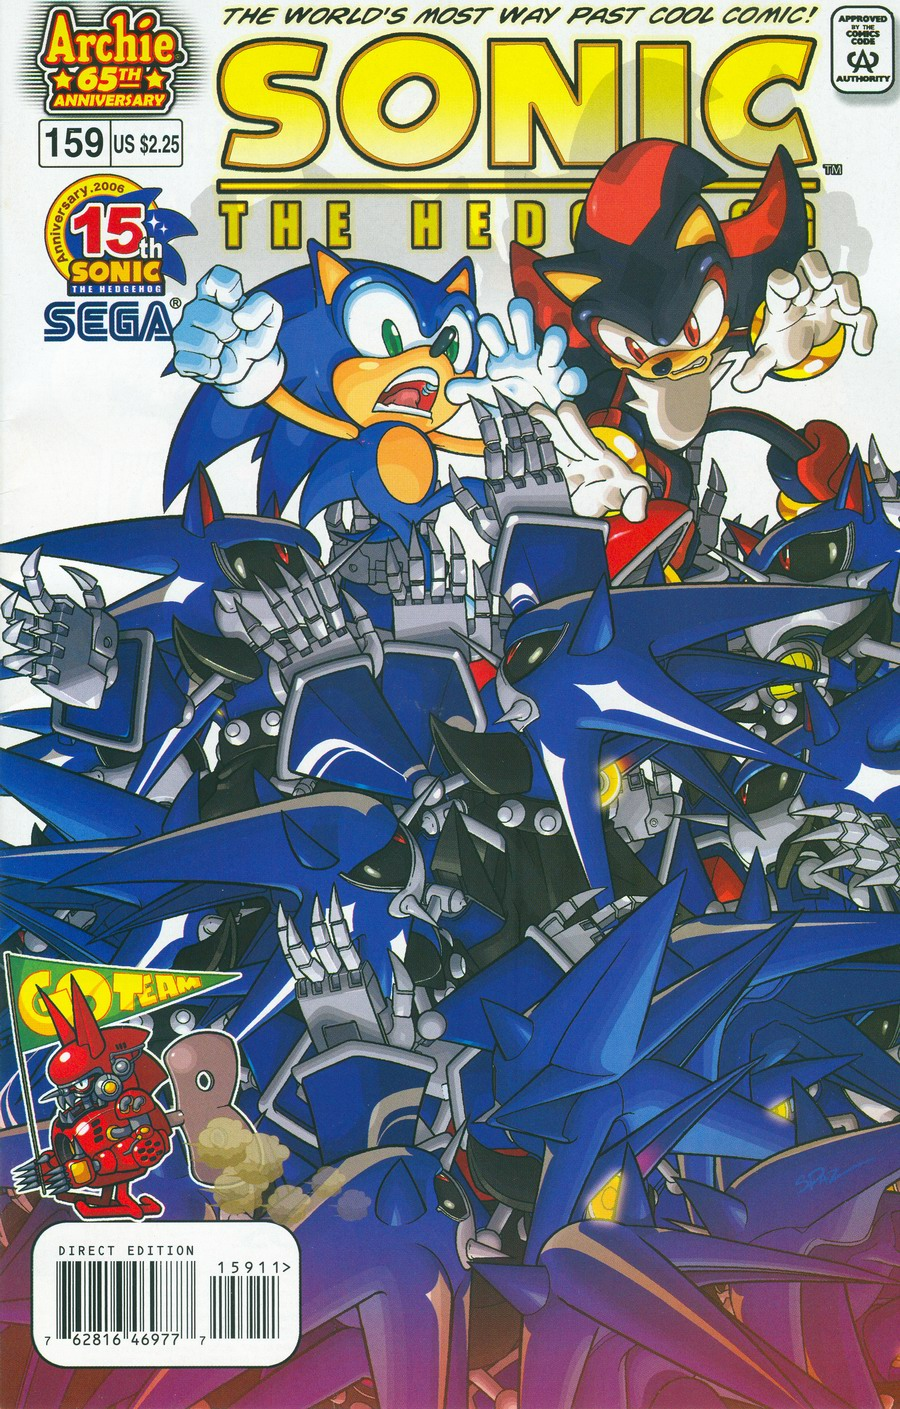 Sonic - Archie Adventure Series April 2006 Cover Page